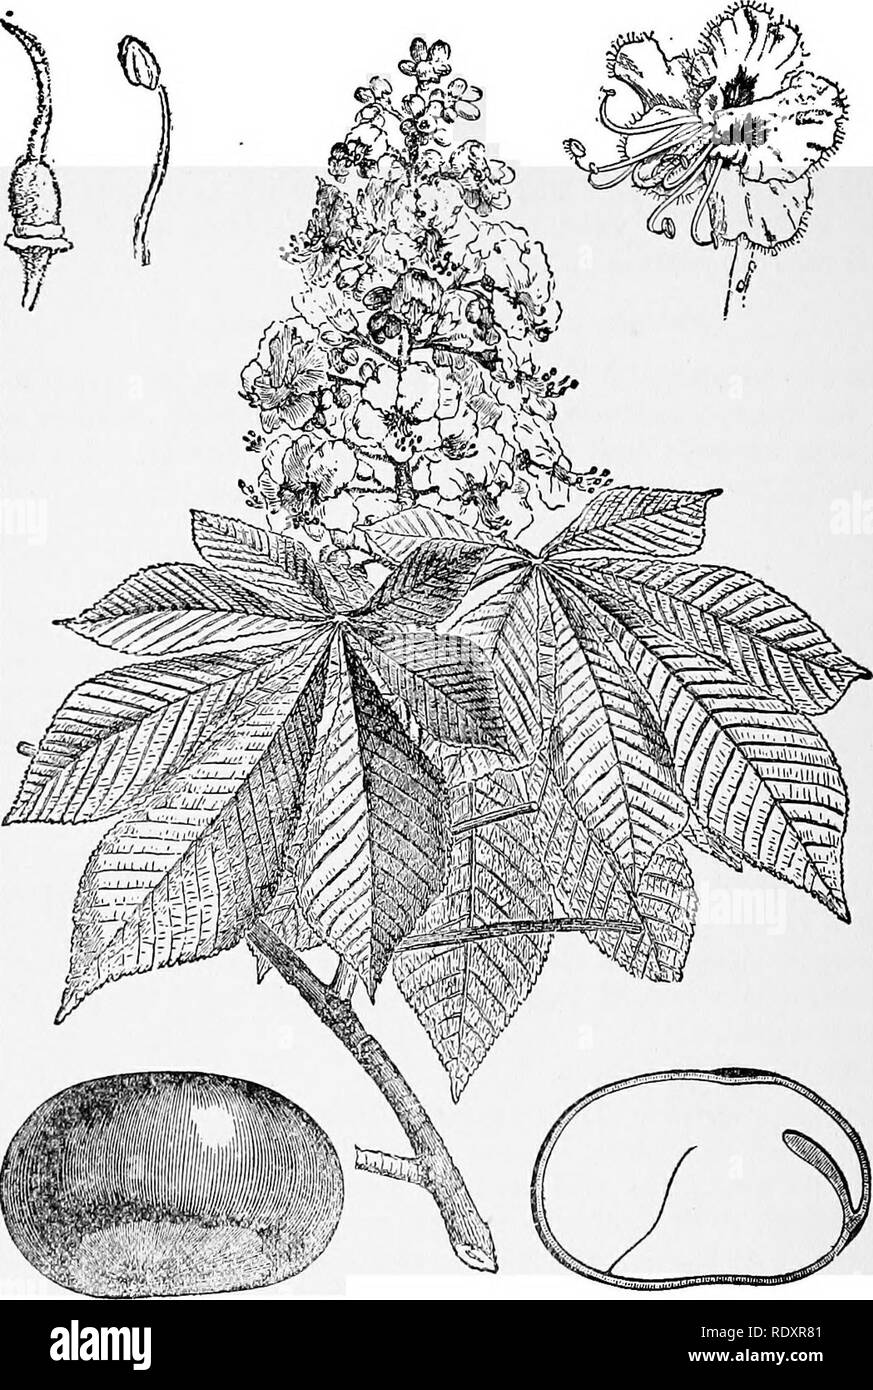 . A manual of poisonous plants, chiefly of eastern North America, with brief notes on economic and medicinal plants, and numerous illustrations. Poisonous plants. 618 MANUAL OF POISONOUS PLANTS. Fig. 347. Horse Chestnut (Aesculus Hippocastanum). Flowering branch. Entire flower. Stamen. Pistil. Entire seed and longitudinal sec- tion. Wood used in making violins. (After Faguet.) domen, are markedly present. The buckeye is an irritant of the cerebro-spinal system, the more prominent symptoms being confusion of mind, vertigo, stupe- faction and coma. BAtSAMiNACEAB. Balsam Family Succulent herbs; l - Stock Image